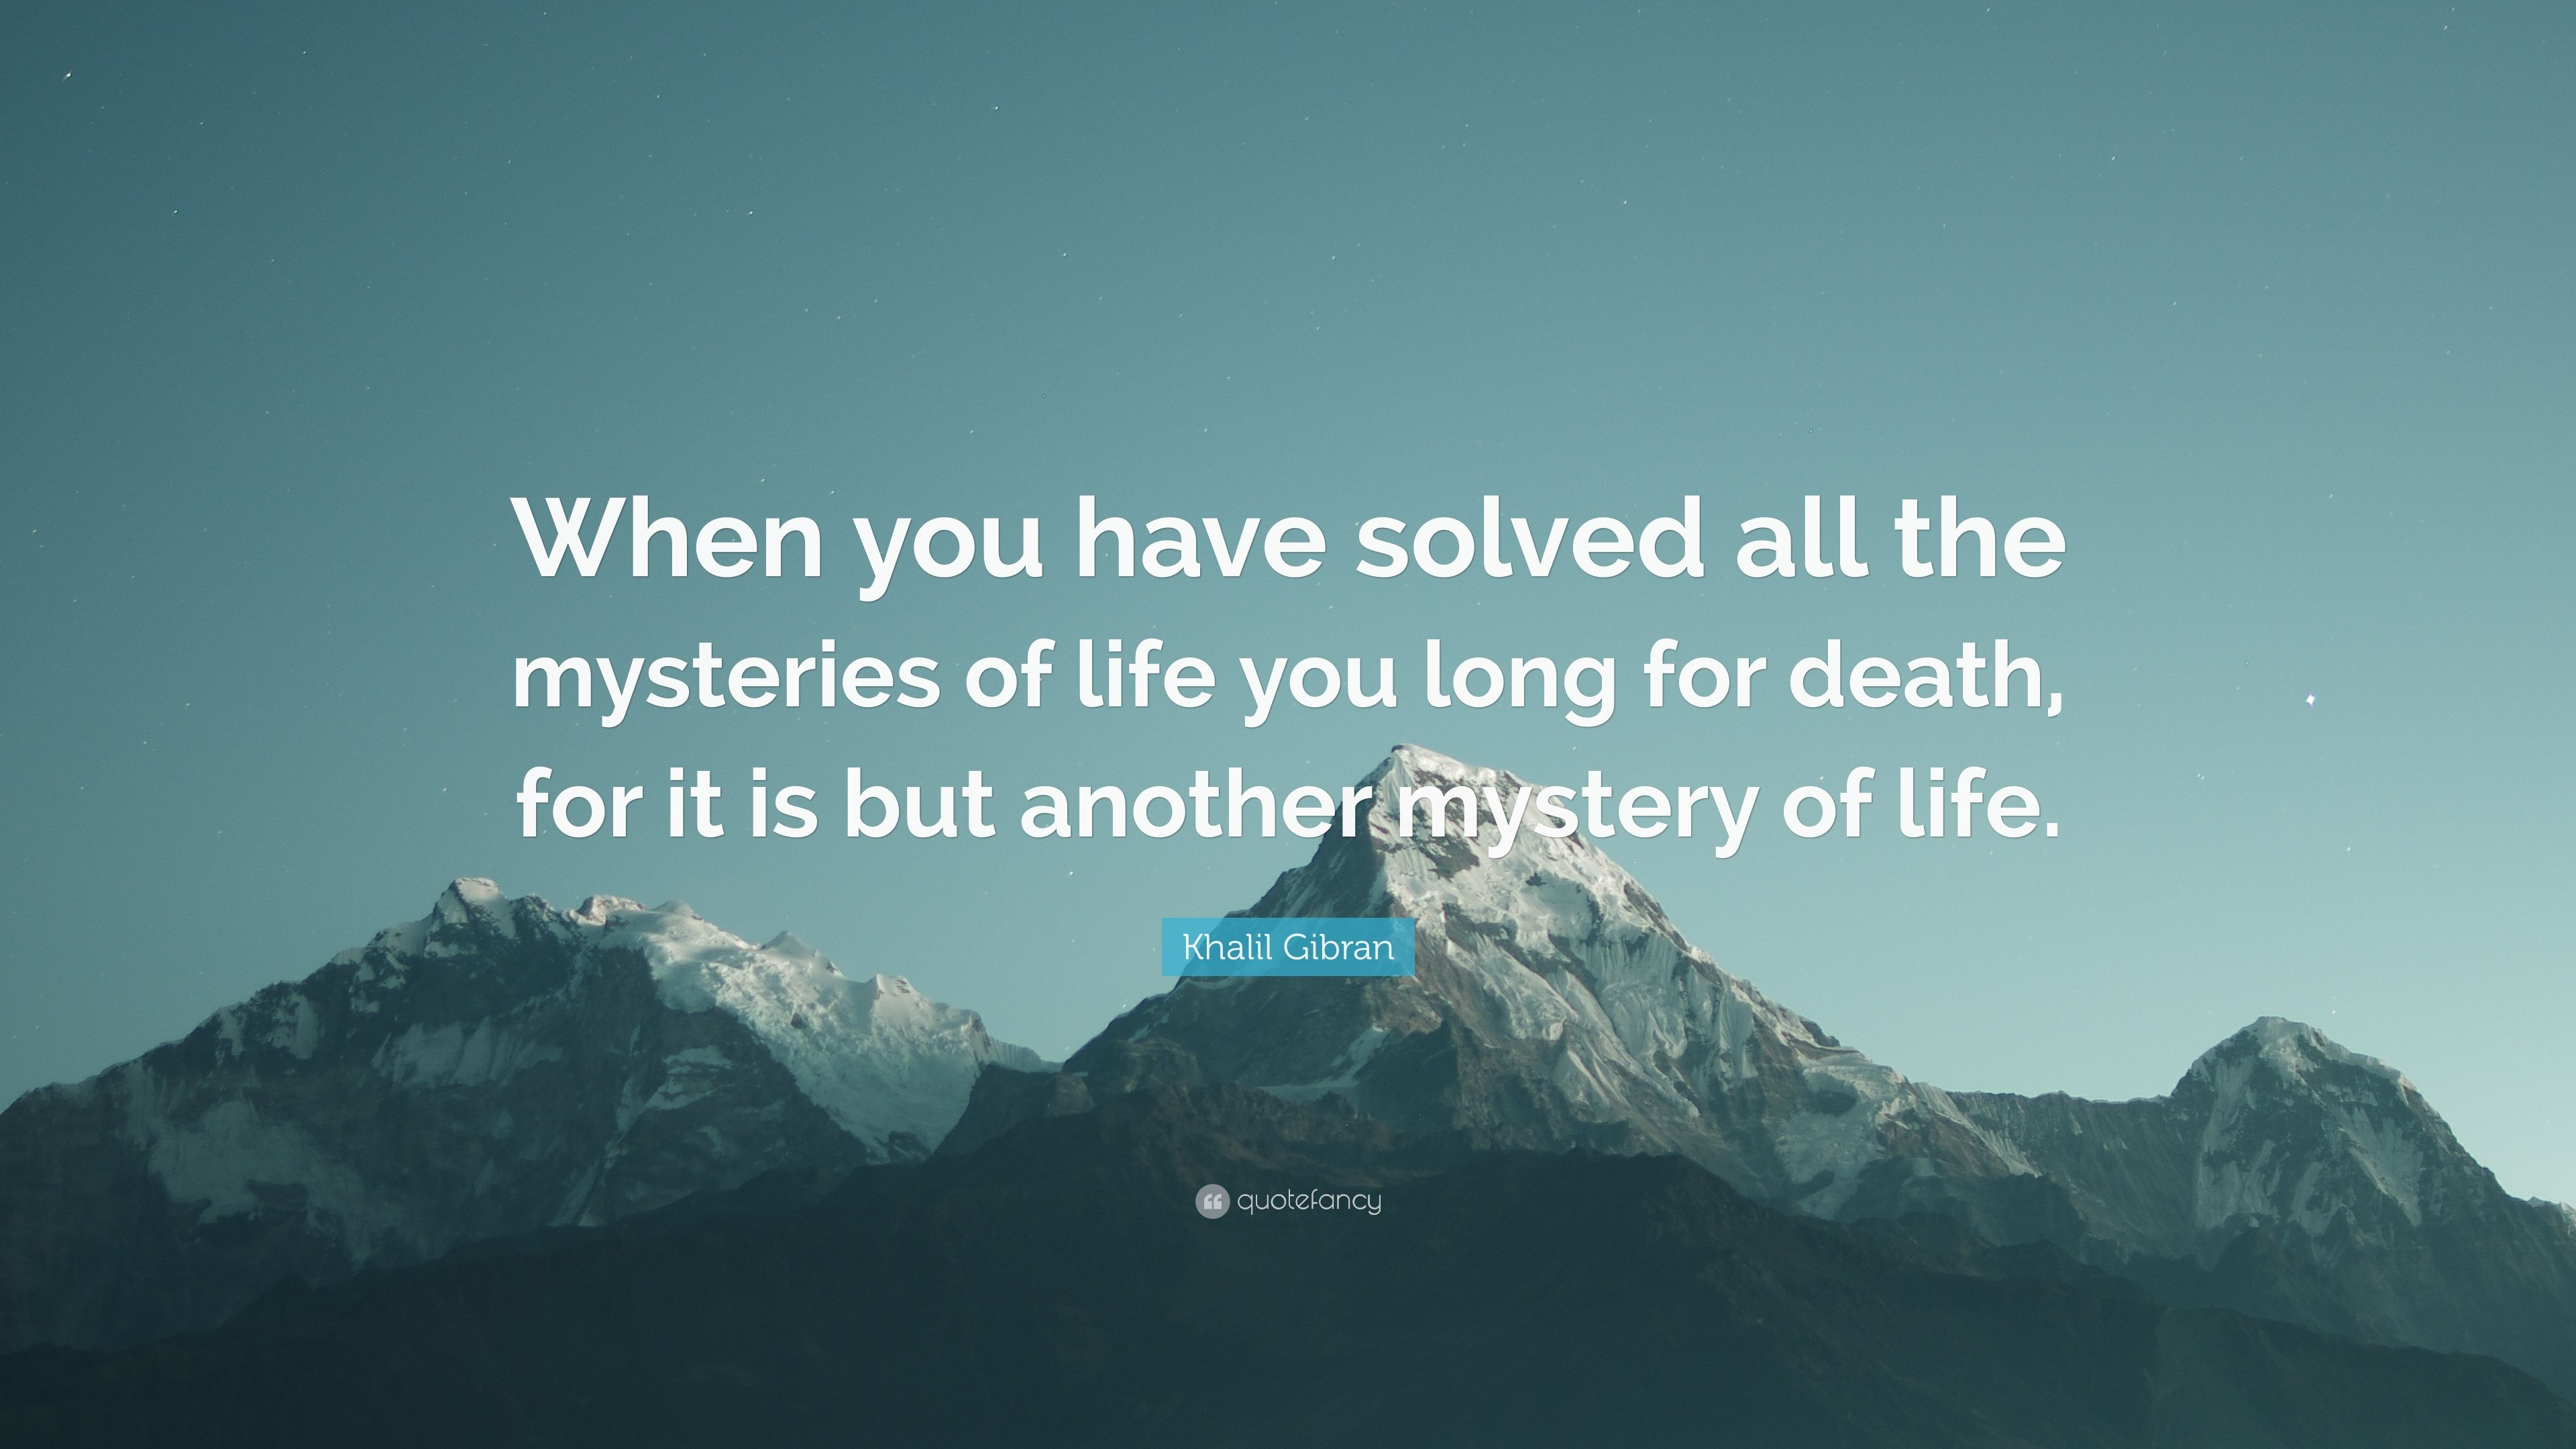 Khalil Gibran Quote When You Have Solved All The Mysteries Of Life